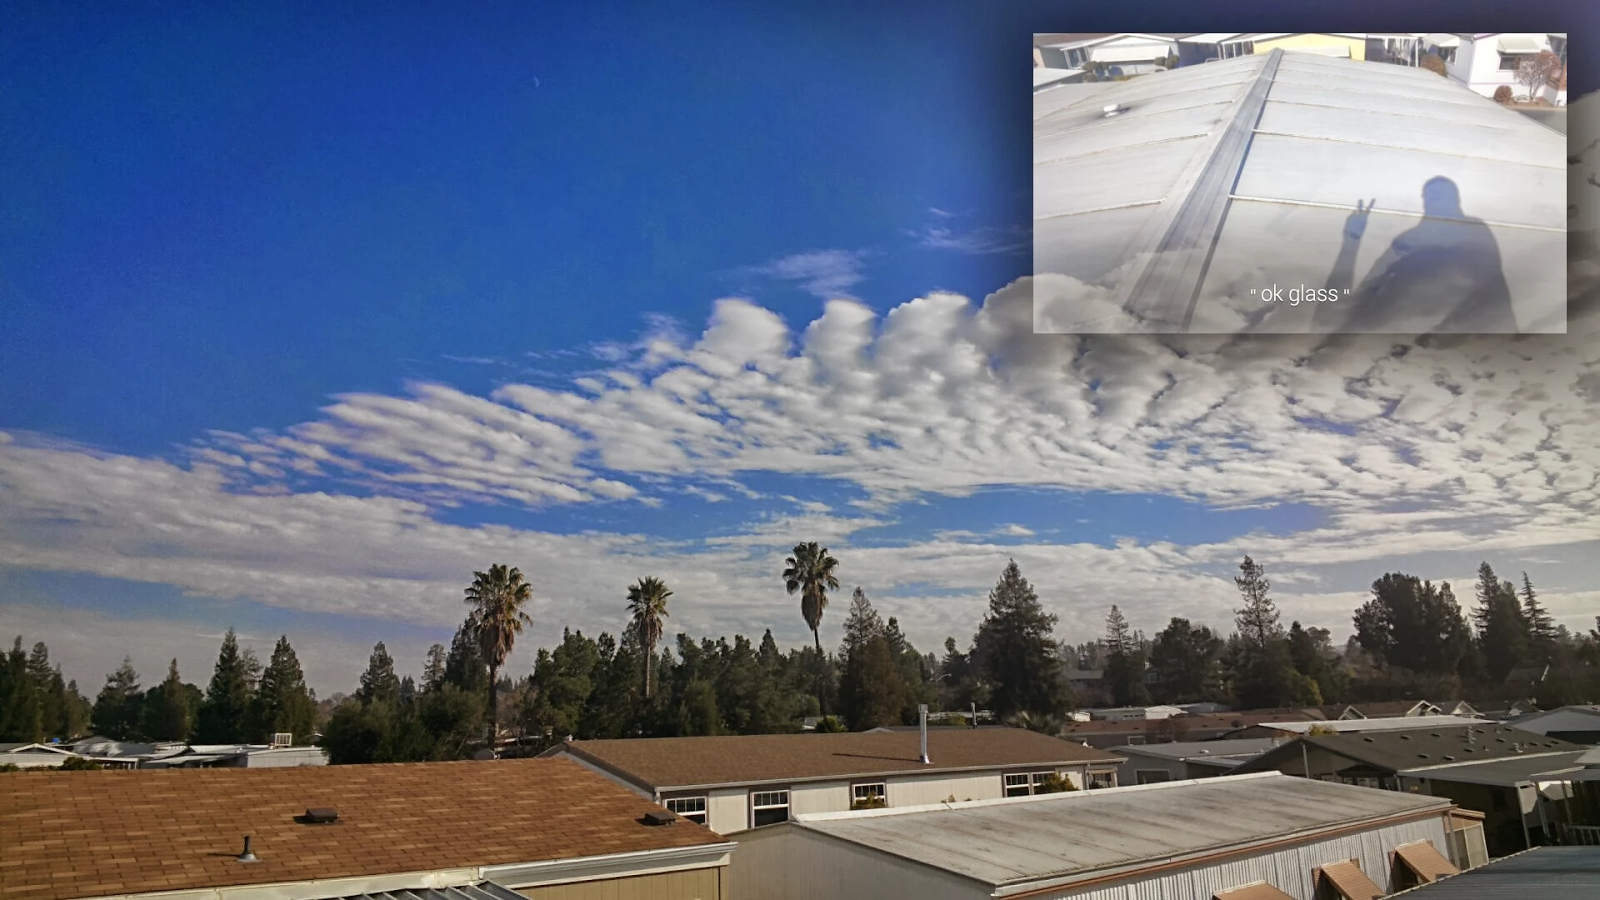 Inspecting a mobile home roof using Google Glass.